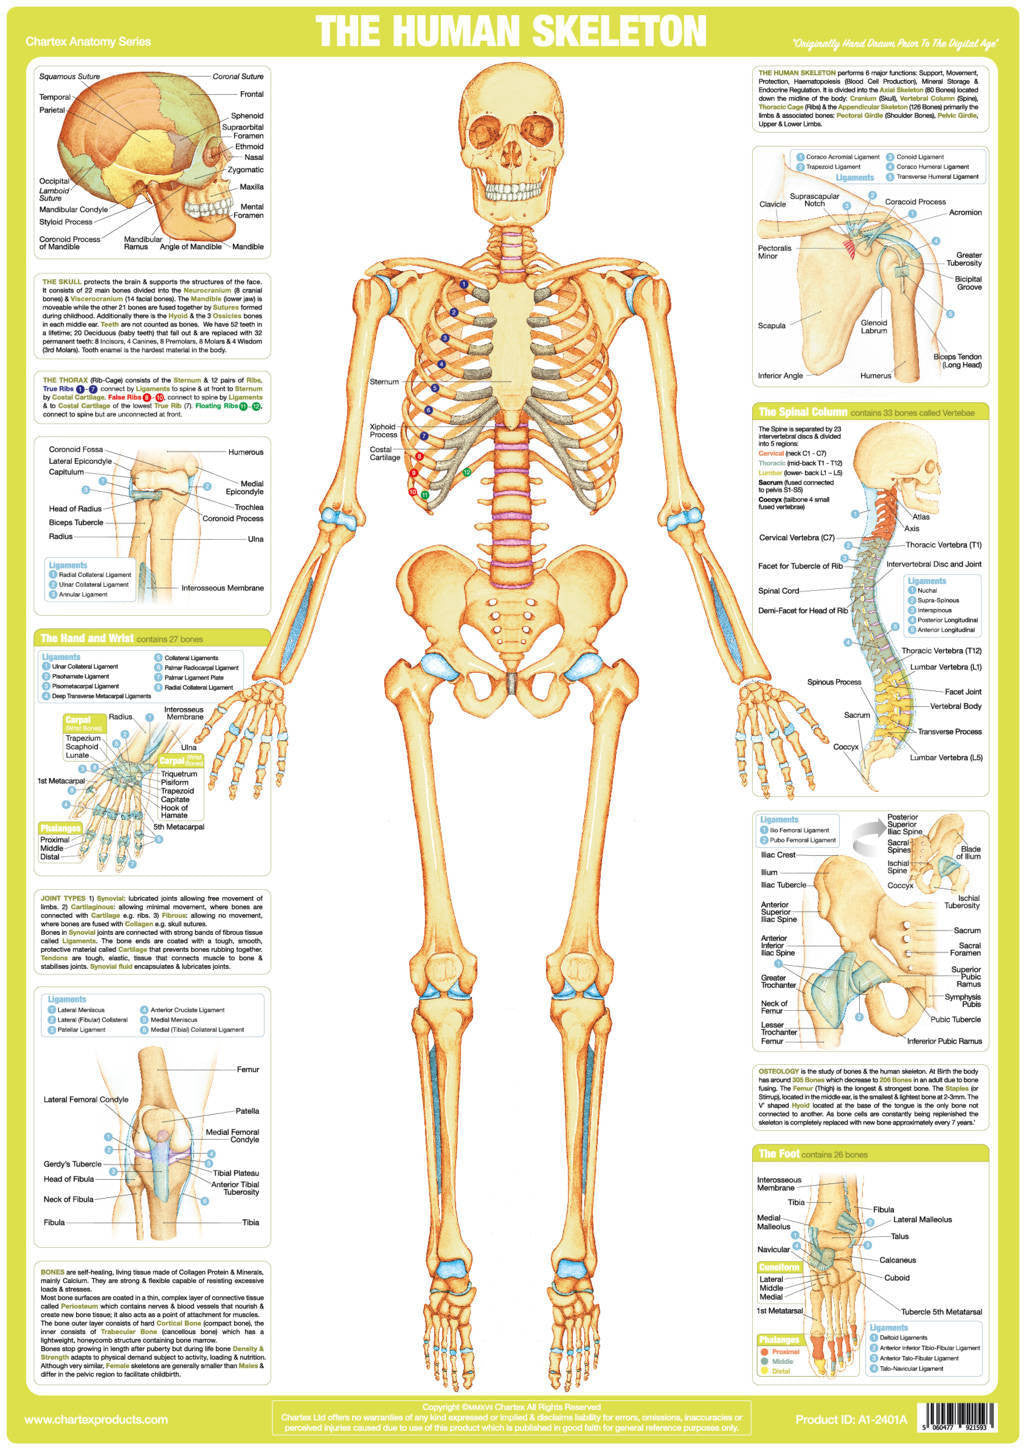 Human Skeleton Poster Chartex Ltd